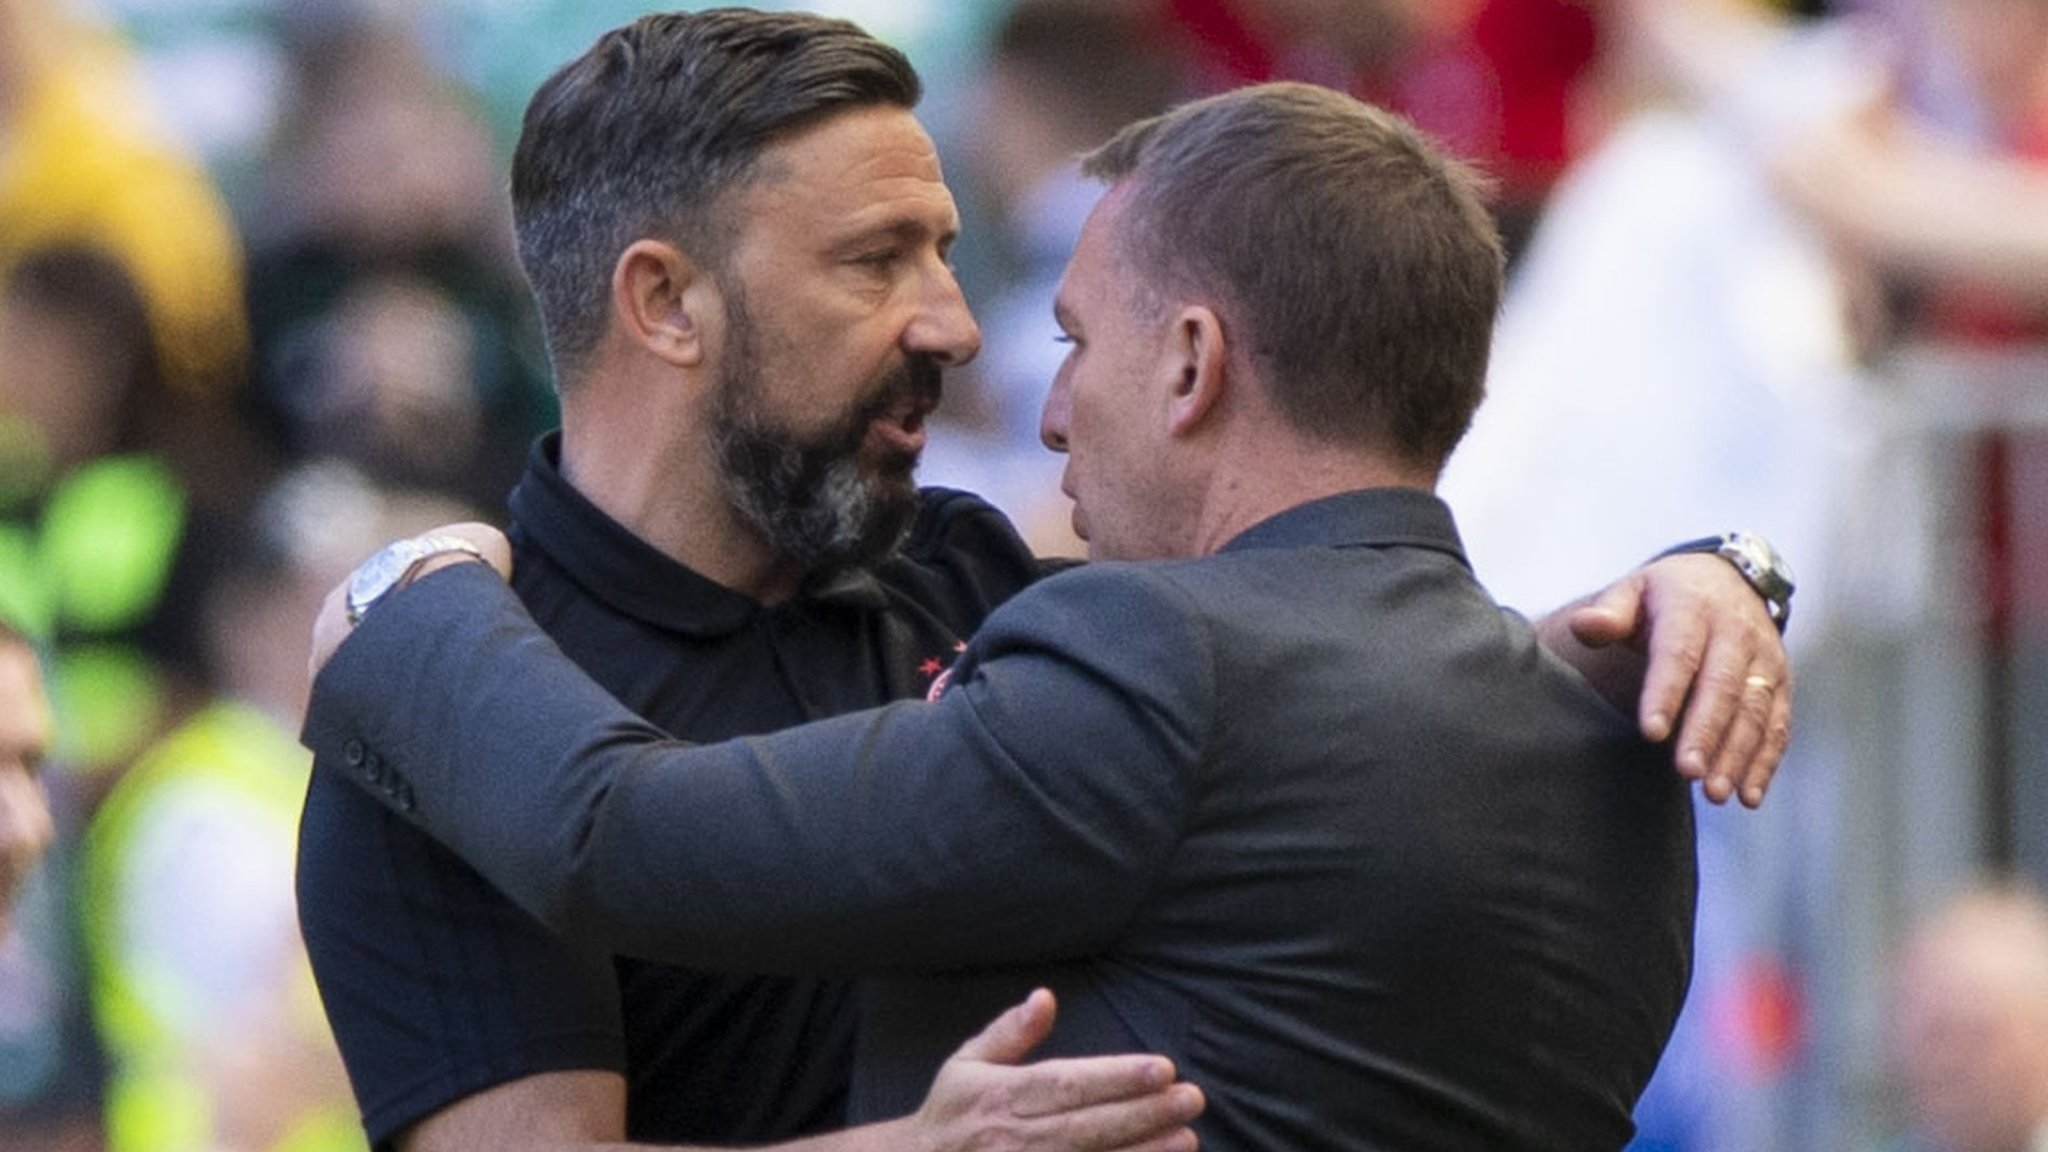 Aberdeen: Derek McInnes says Dons 'can't finish first' if Celtic 'keep doing their job'